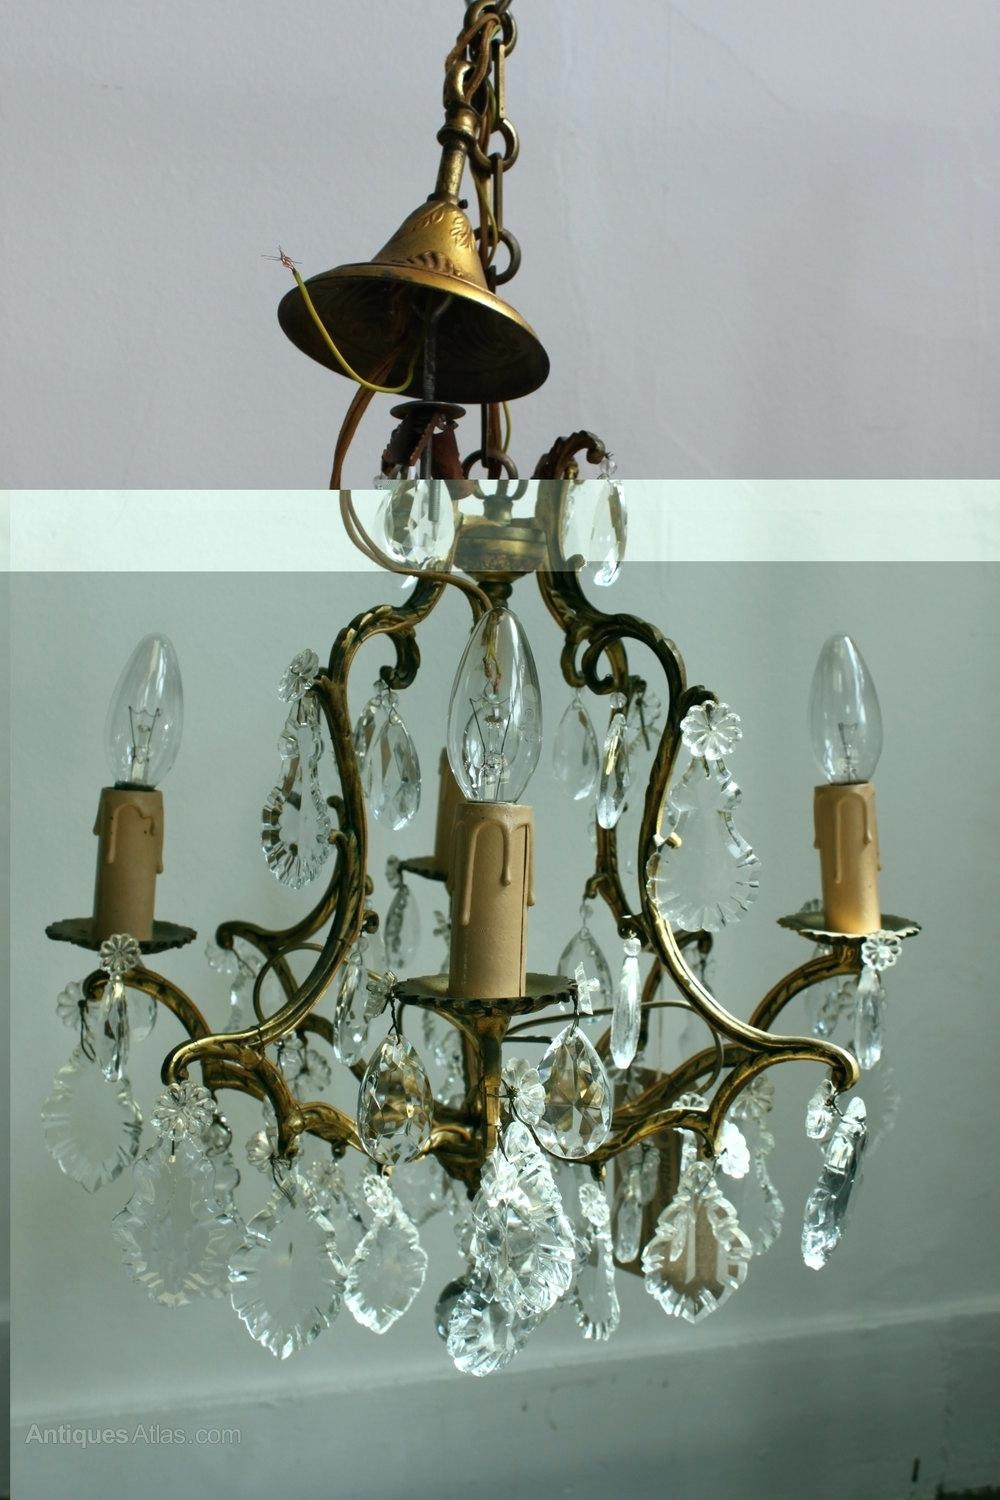 Blue Glass Chandelier French Brass Chandelier Antique Lighting Within Antique French Chandeliers (View 6 of 15)